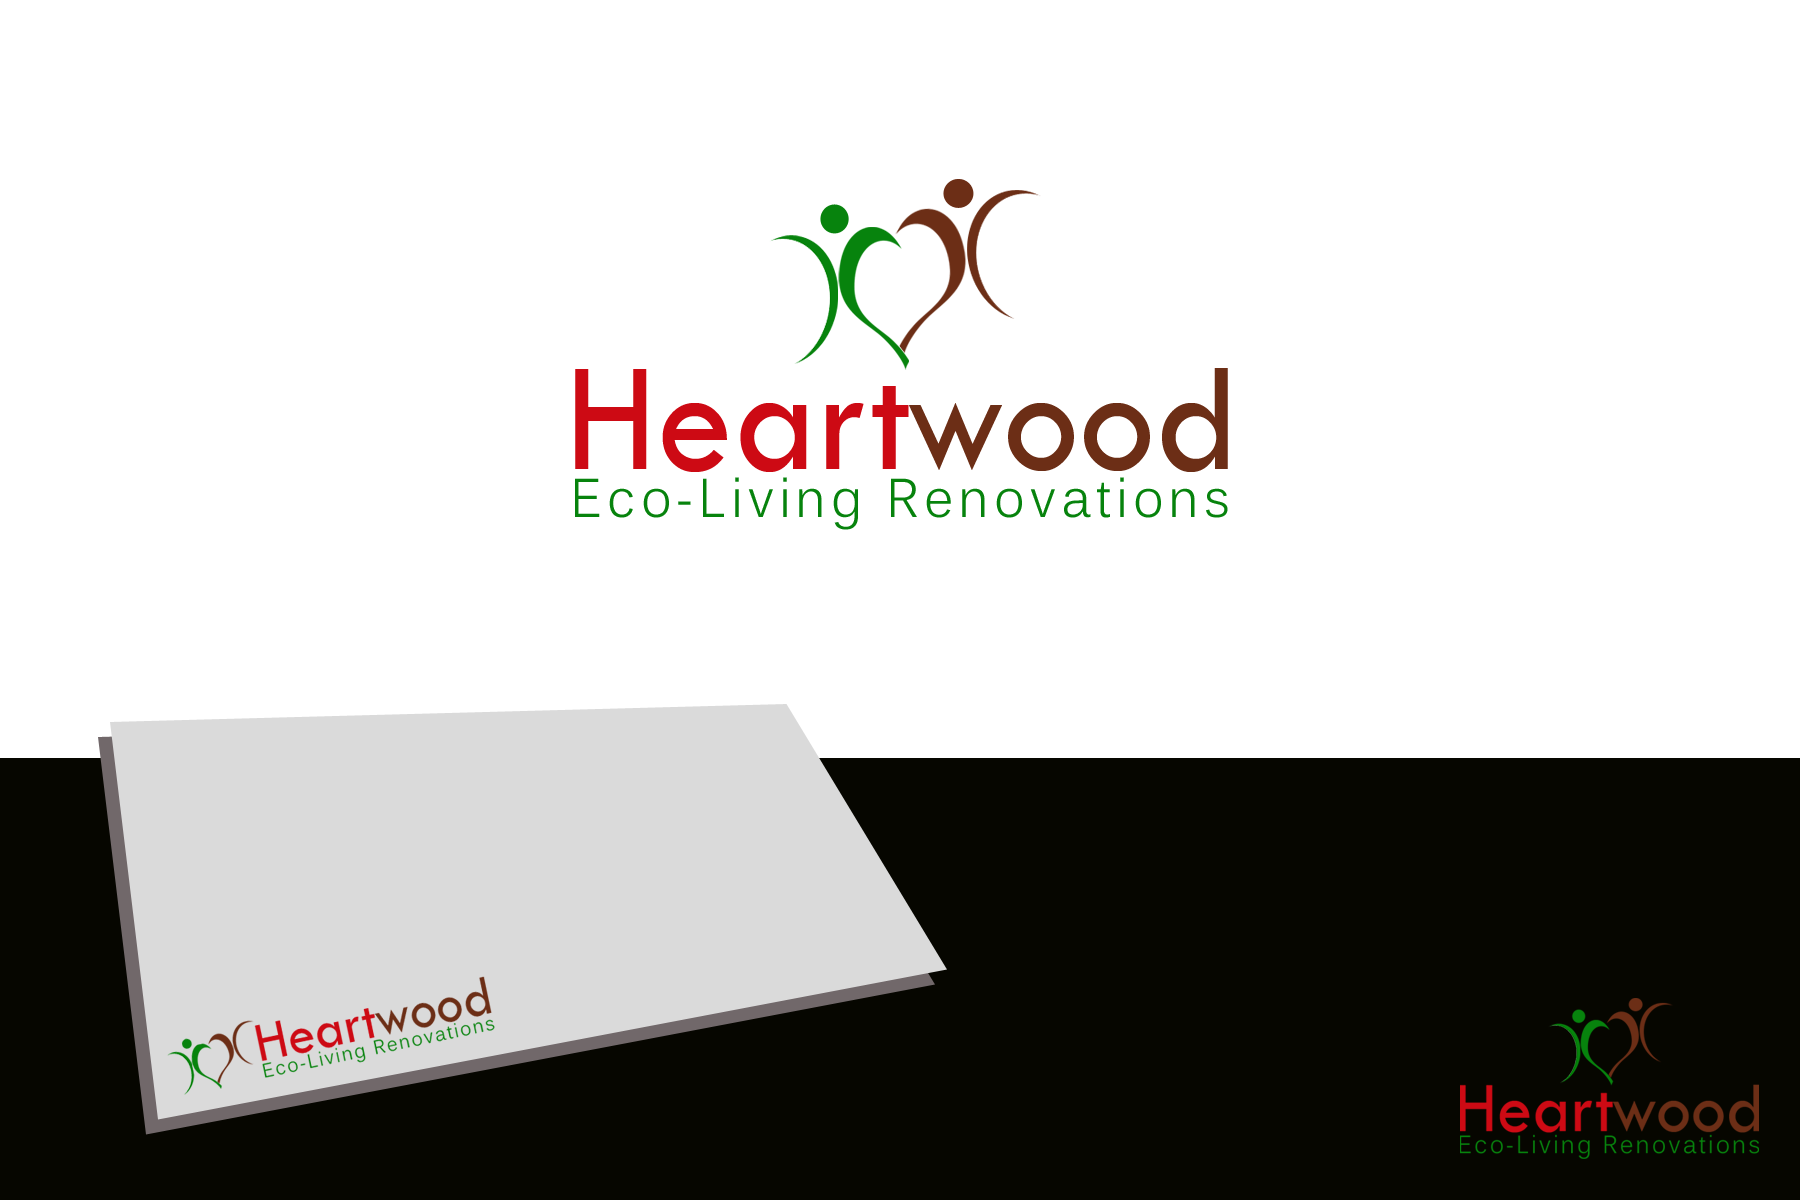 Logo Design by Golden_Hand - Entry No. 11 in the Logo Design Contest New Logo Design for Heartwood Eco-Living Renovations.